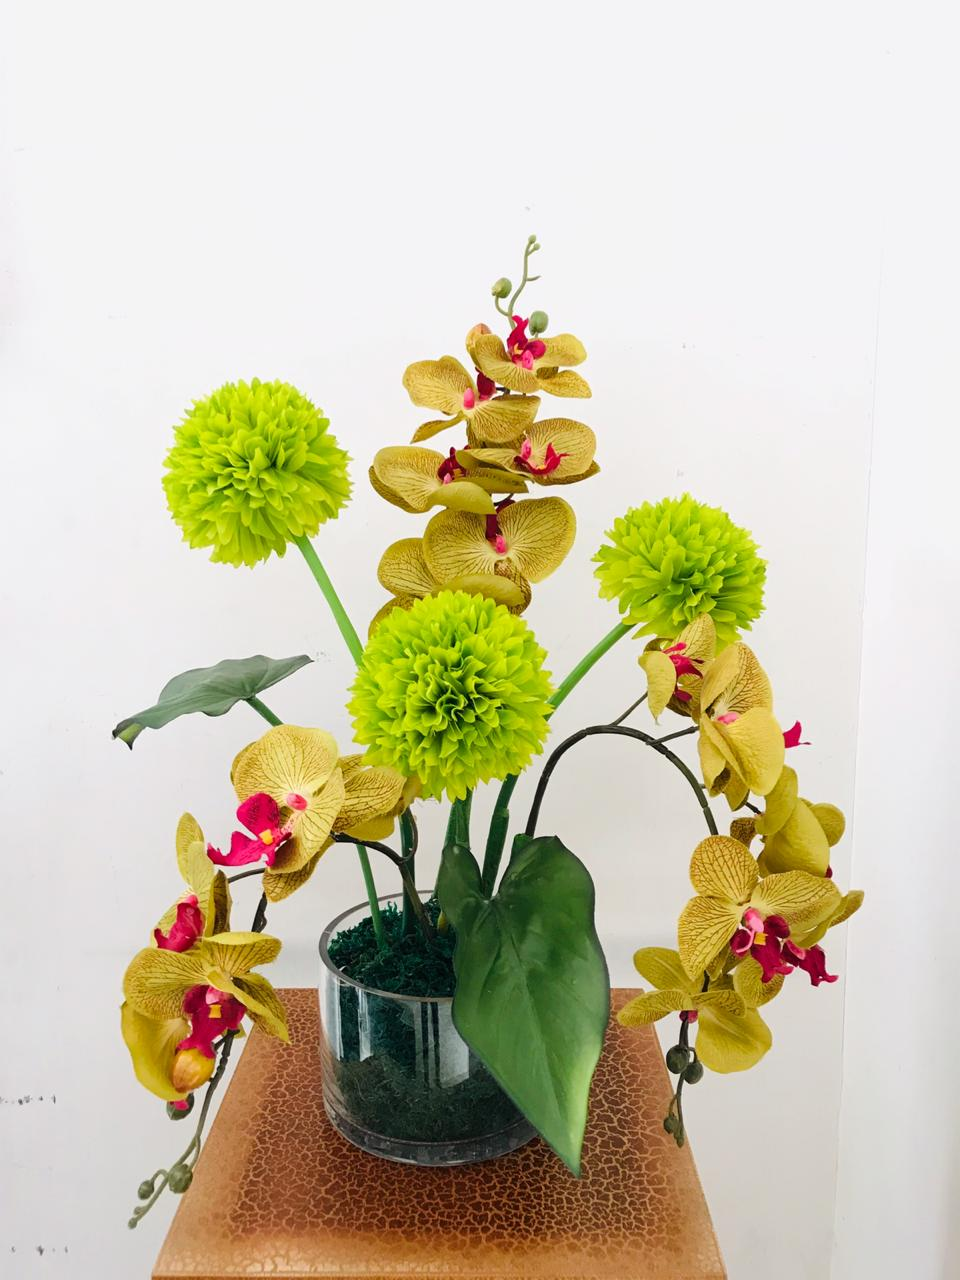 Artificial Floral Arrangement (h:54cm w:38cm)